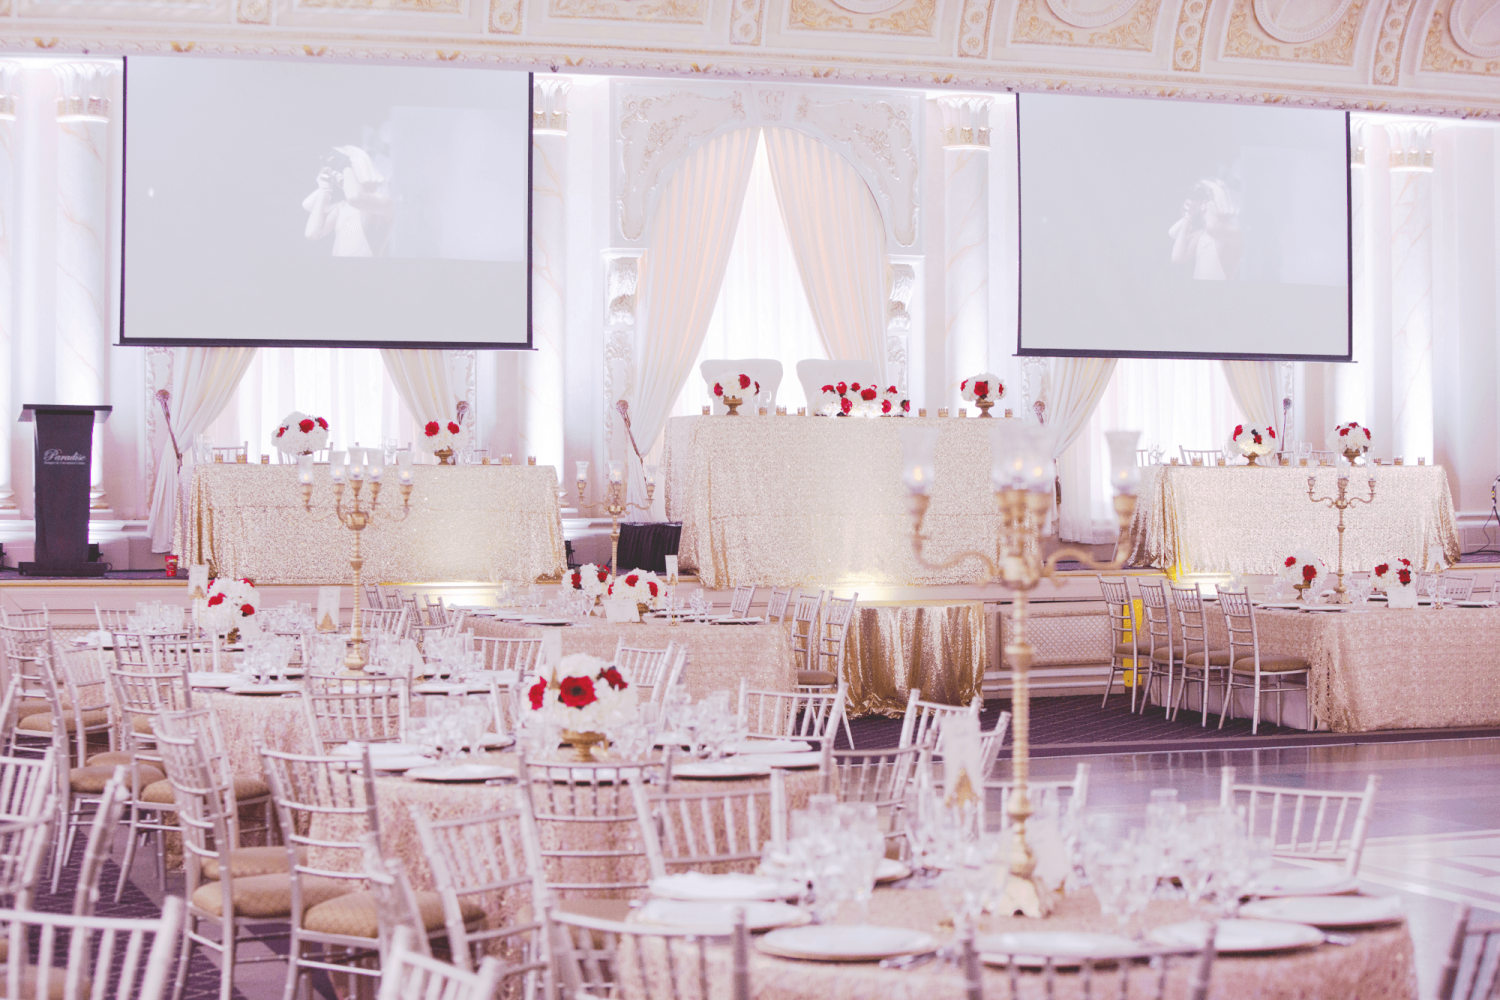 The Queen Mary Ballroom venue at Paradise Banquet Halls with a dance floor, circular tables with chairs, and a raised head table with a red and white flower colour scheme.